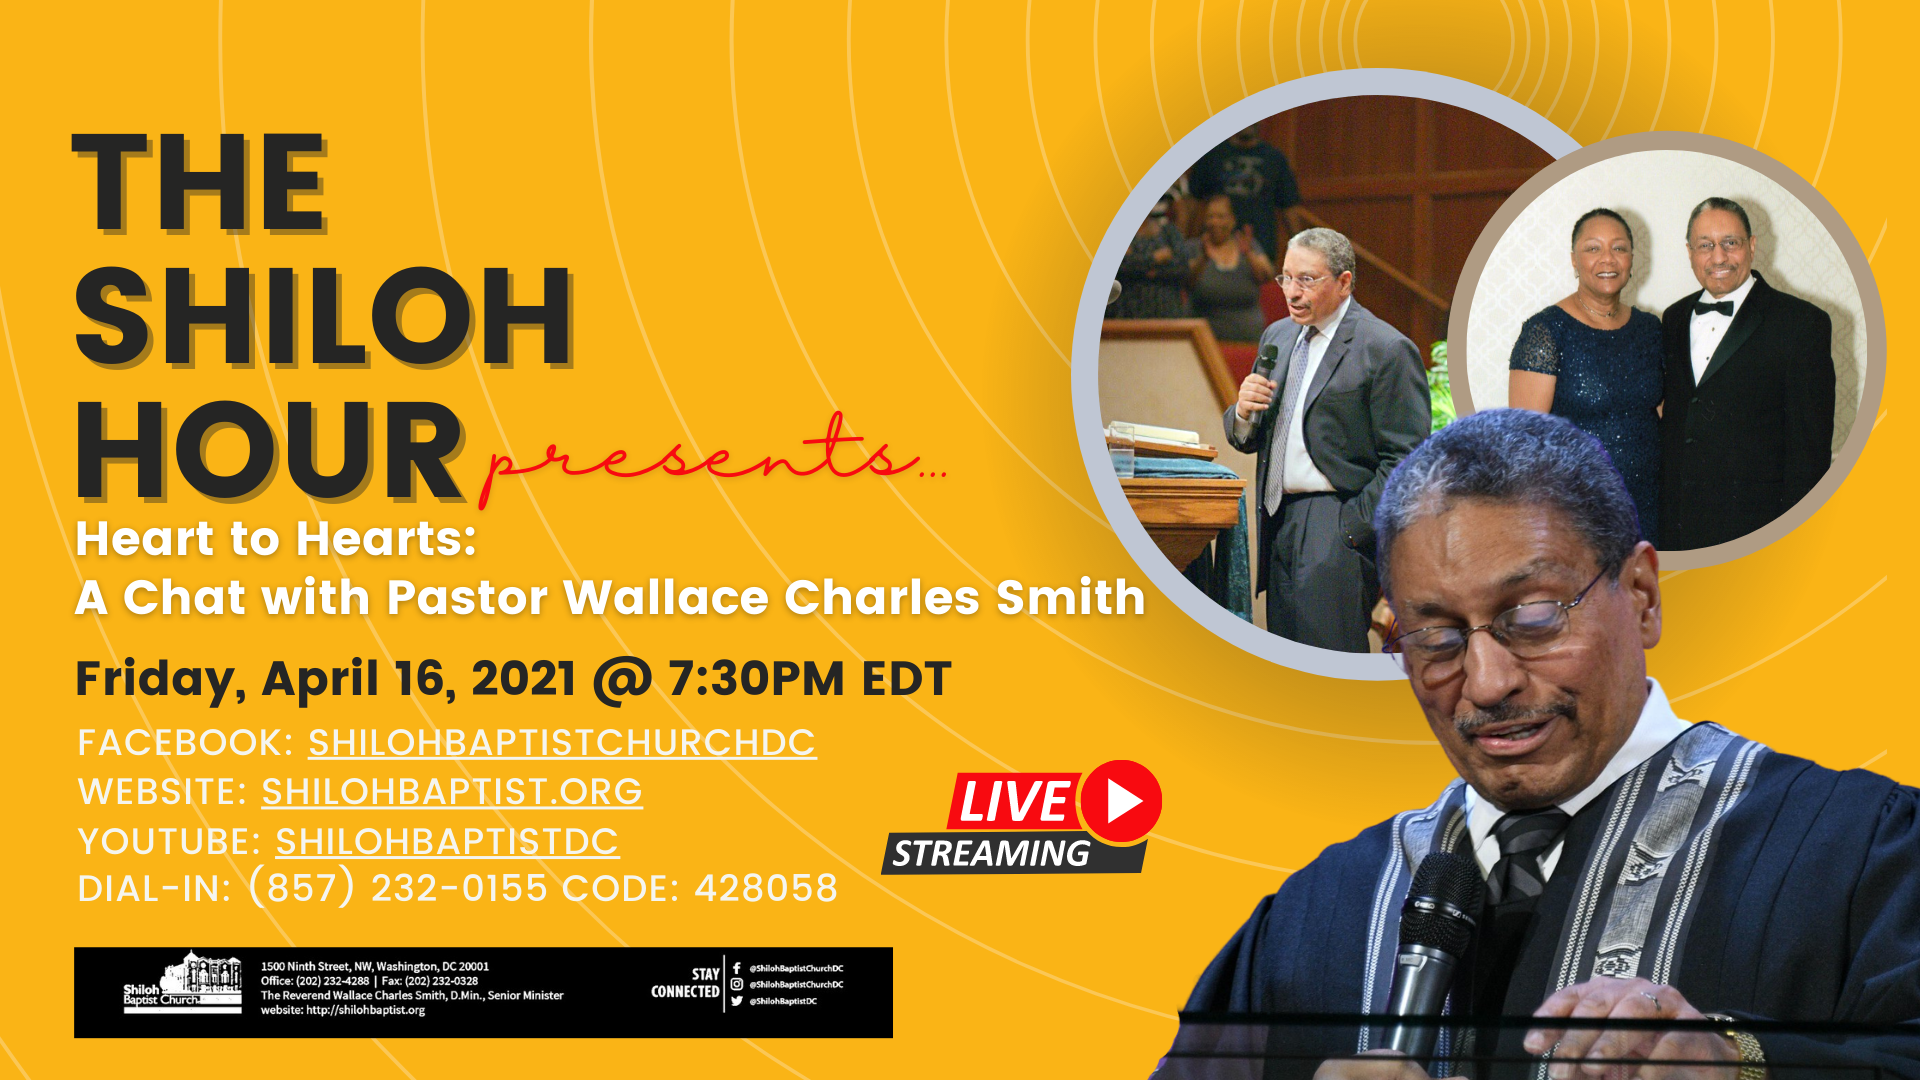 The Shiloh Hour presents: Heart to Hearts…A Chat with Pastor Wallace Charles Smith